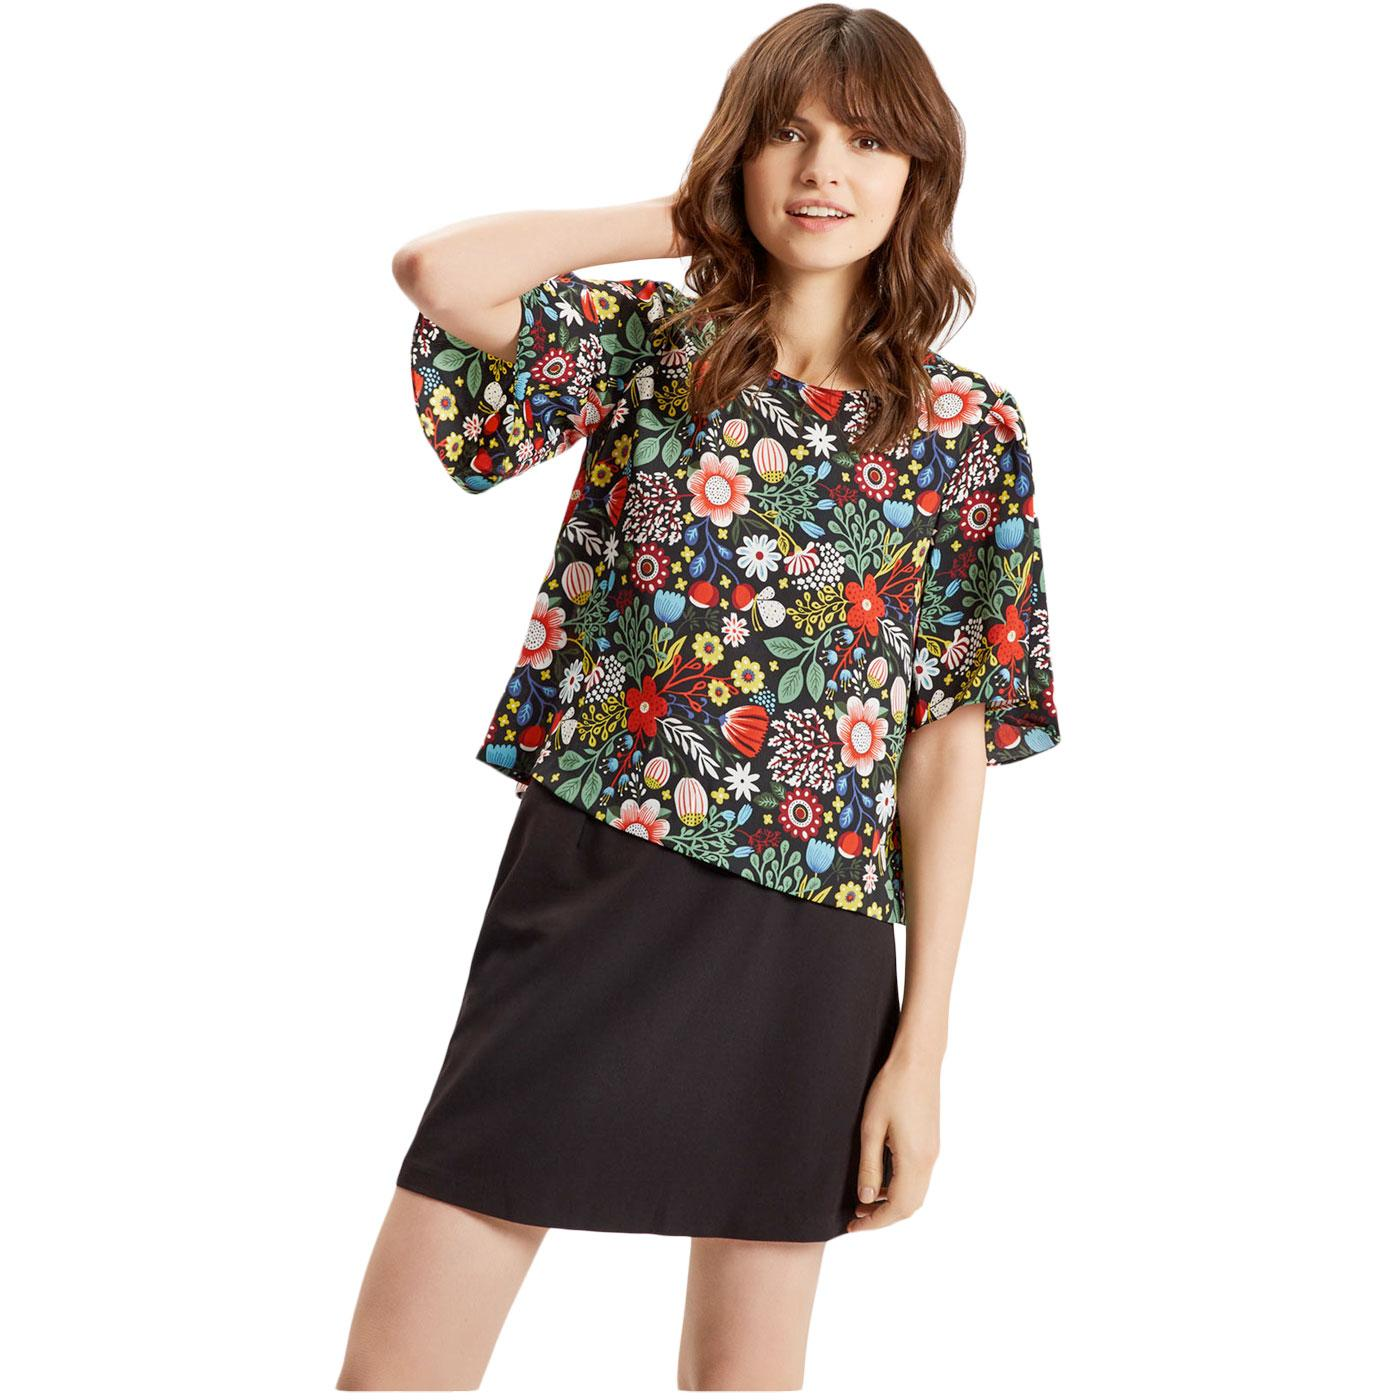 Whisper TRAFFIC PEOPLE Retro 60s Floral Top